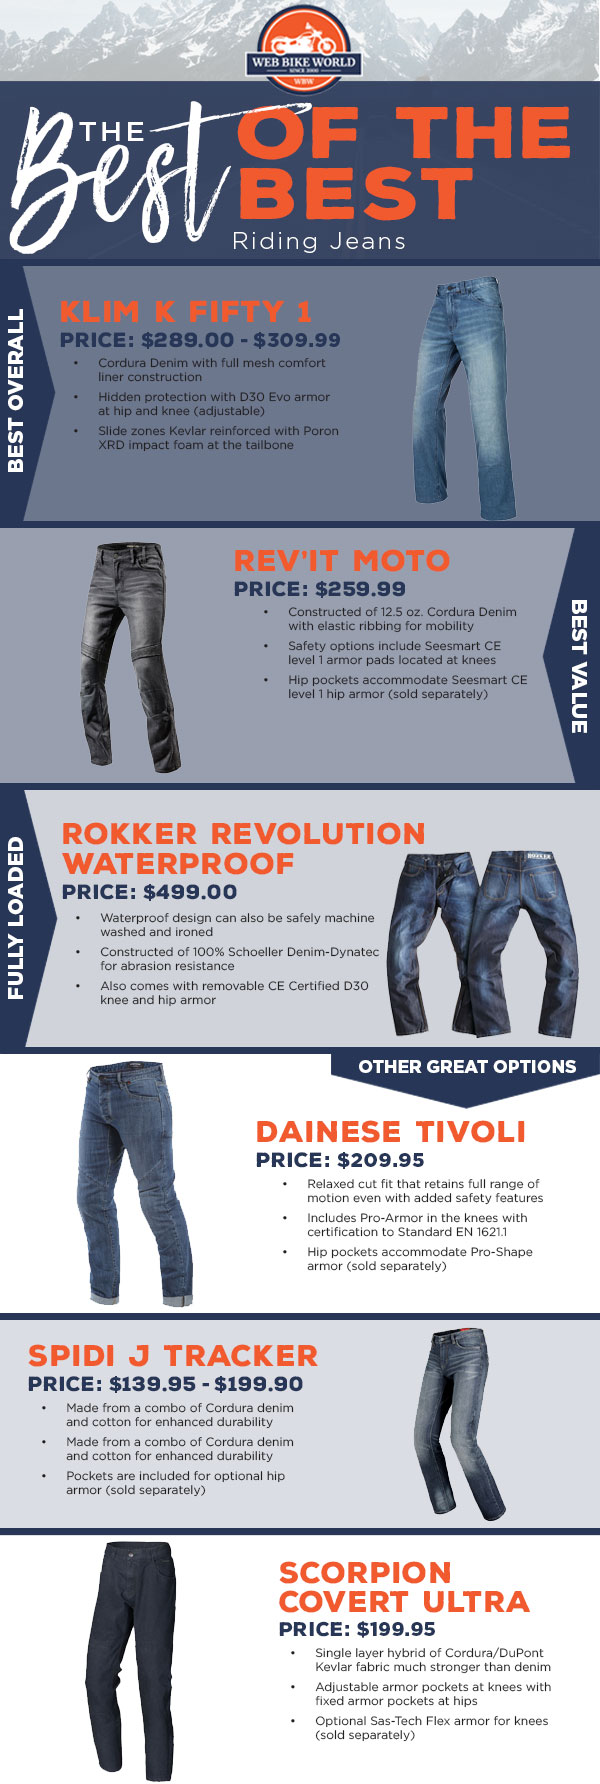 The Best Riding Jeans Infographic 2019